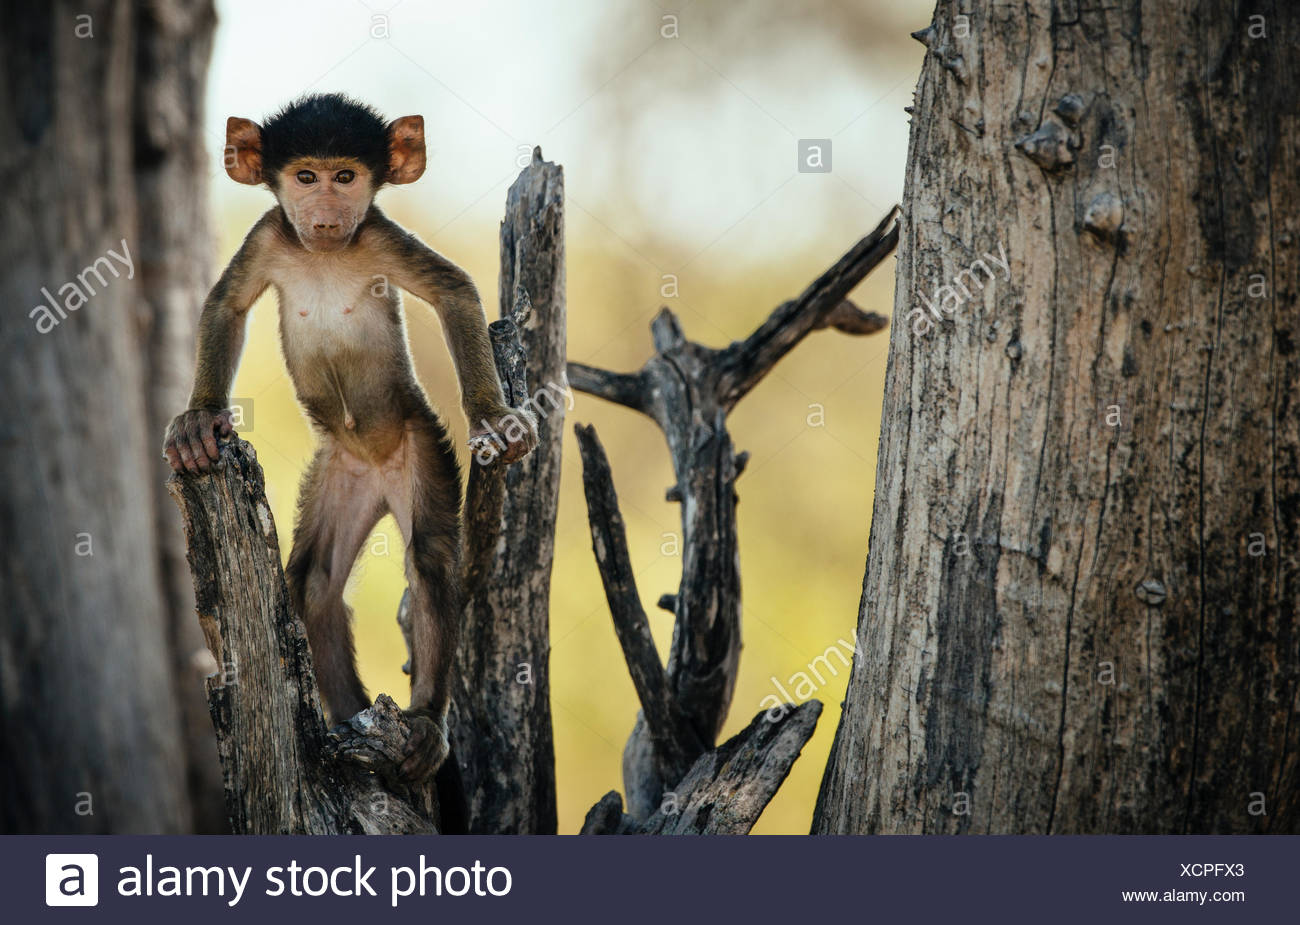 A young baboon standing on a tree branch. - Stock Image